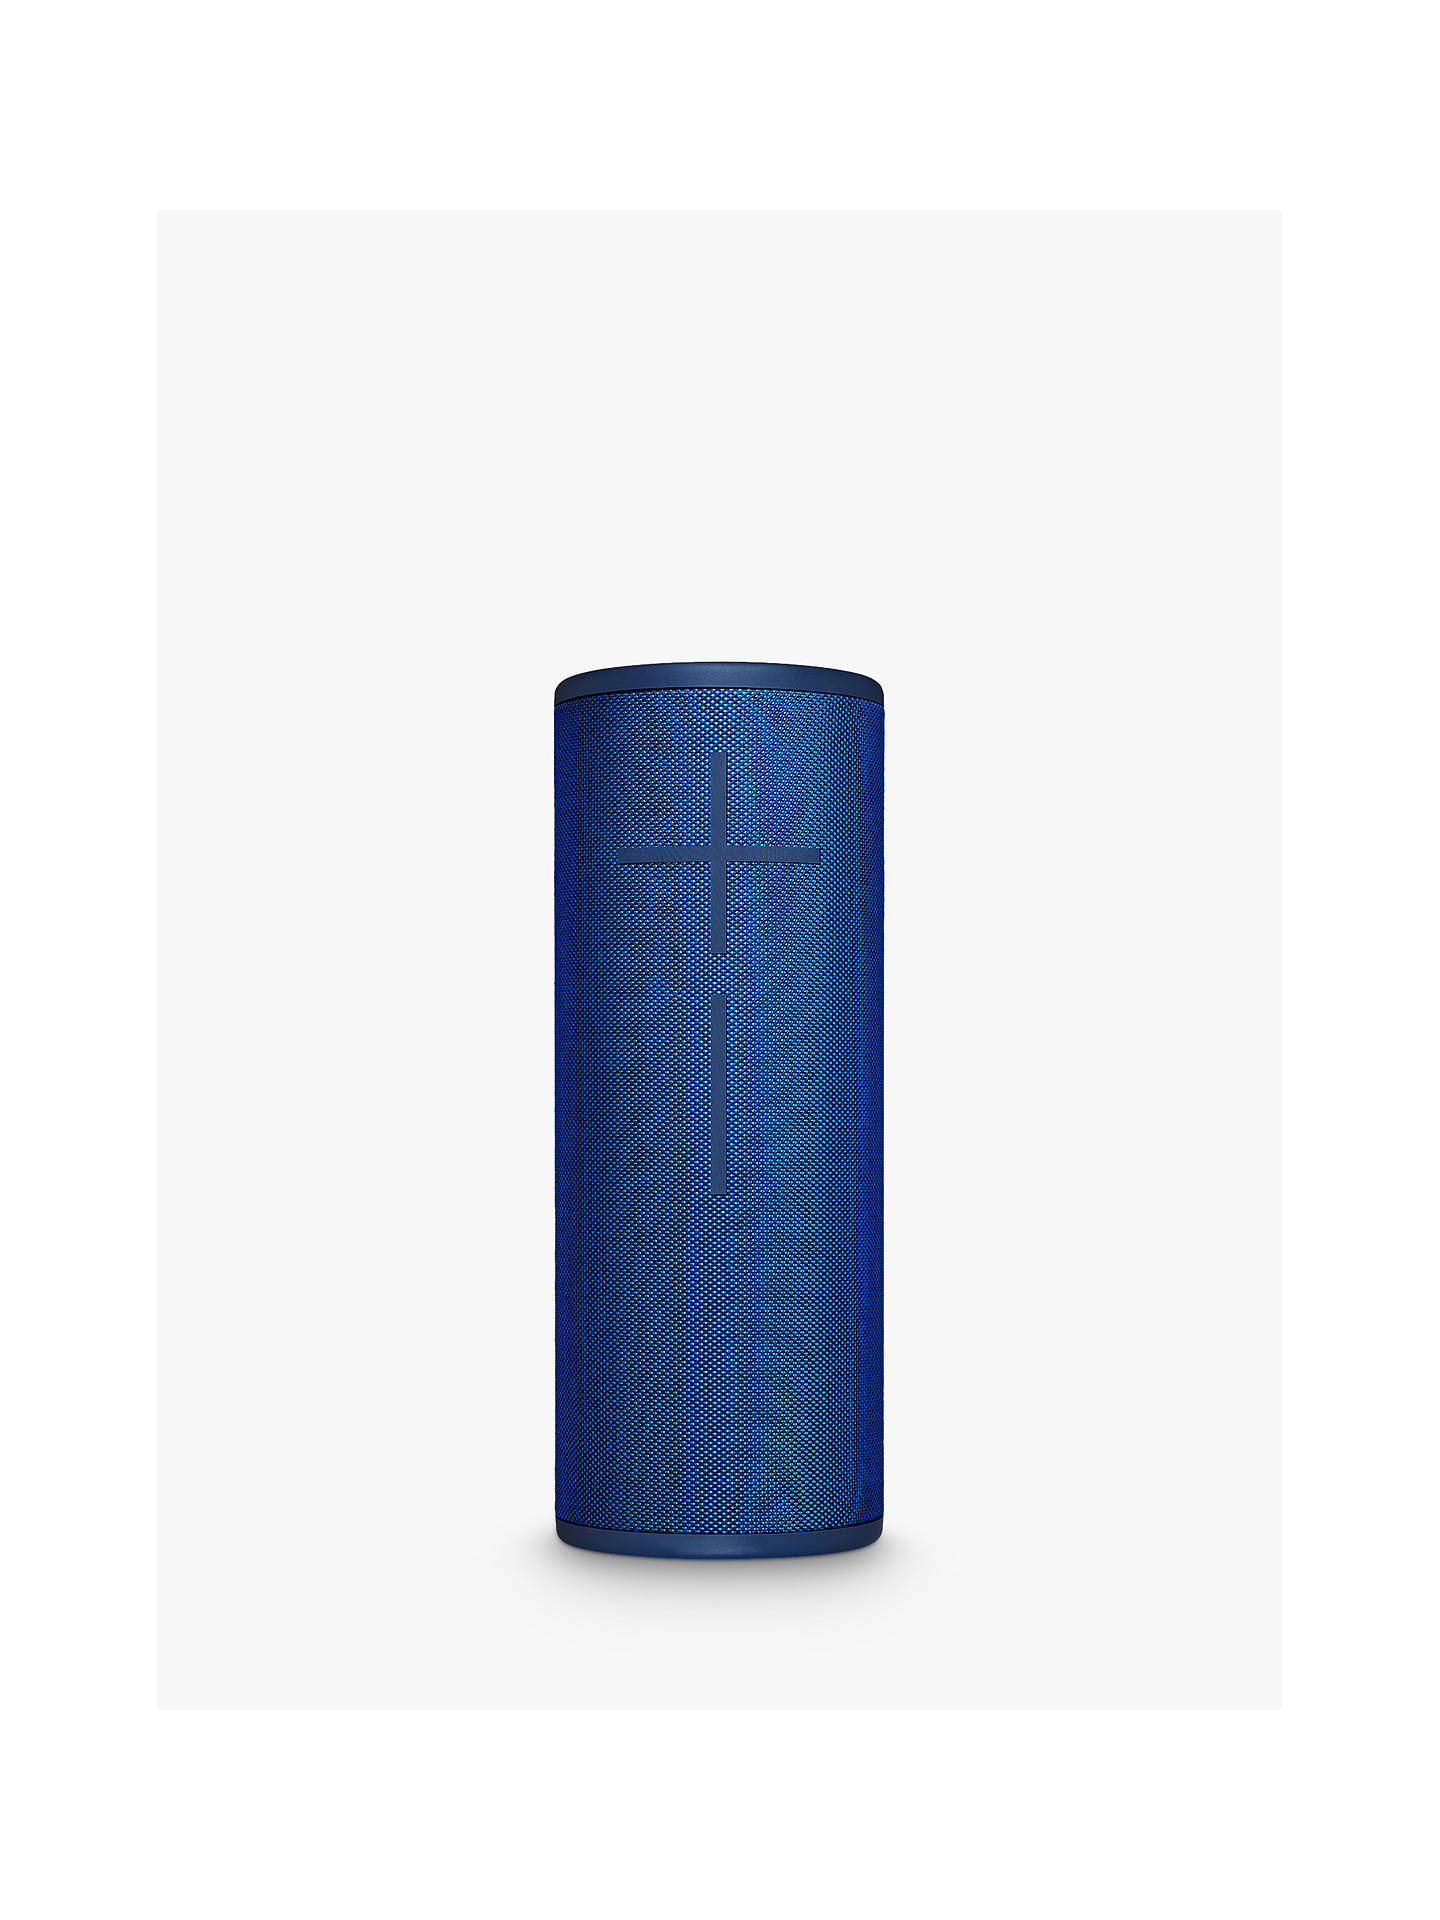 Buy Ultimate Ears MEGABOOM 3 Bluetooth Waterproof Portable Speaker, Lagoon Blue Online at johnlewis.com